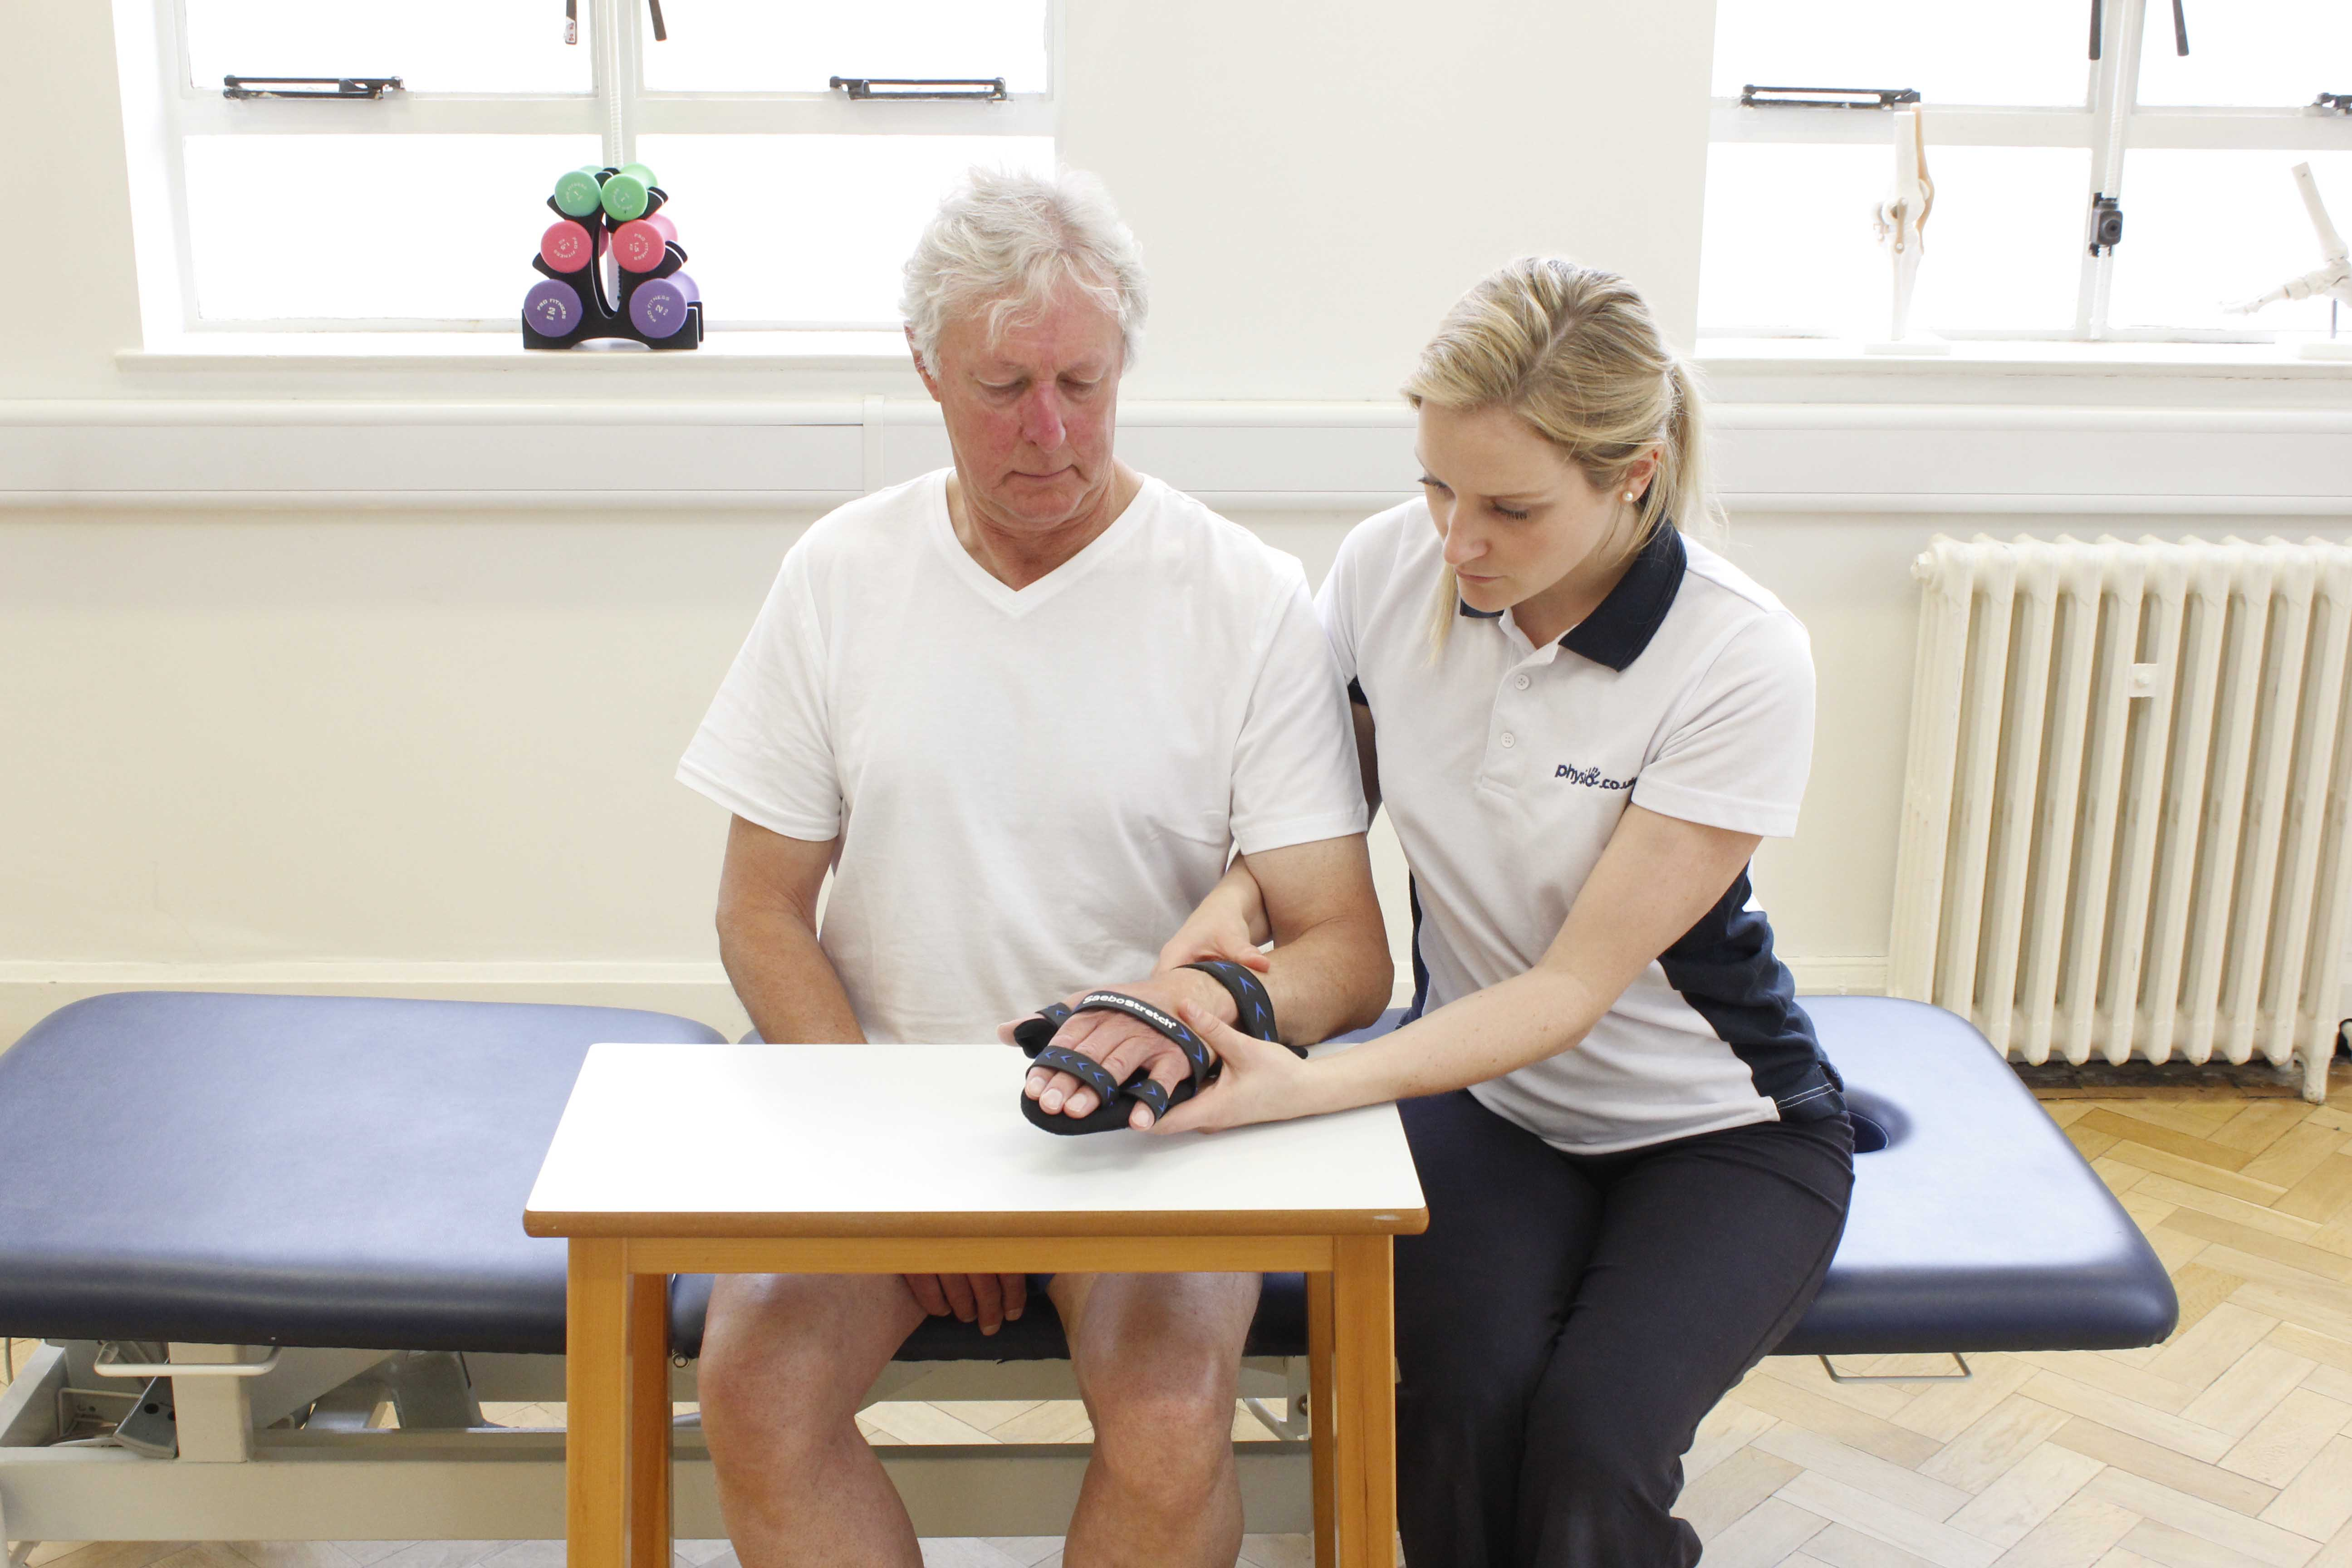 Therapist adjusting splint used in treatment of wrist and hand conditions